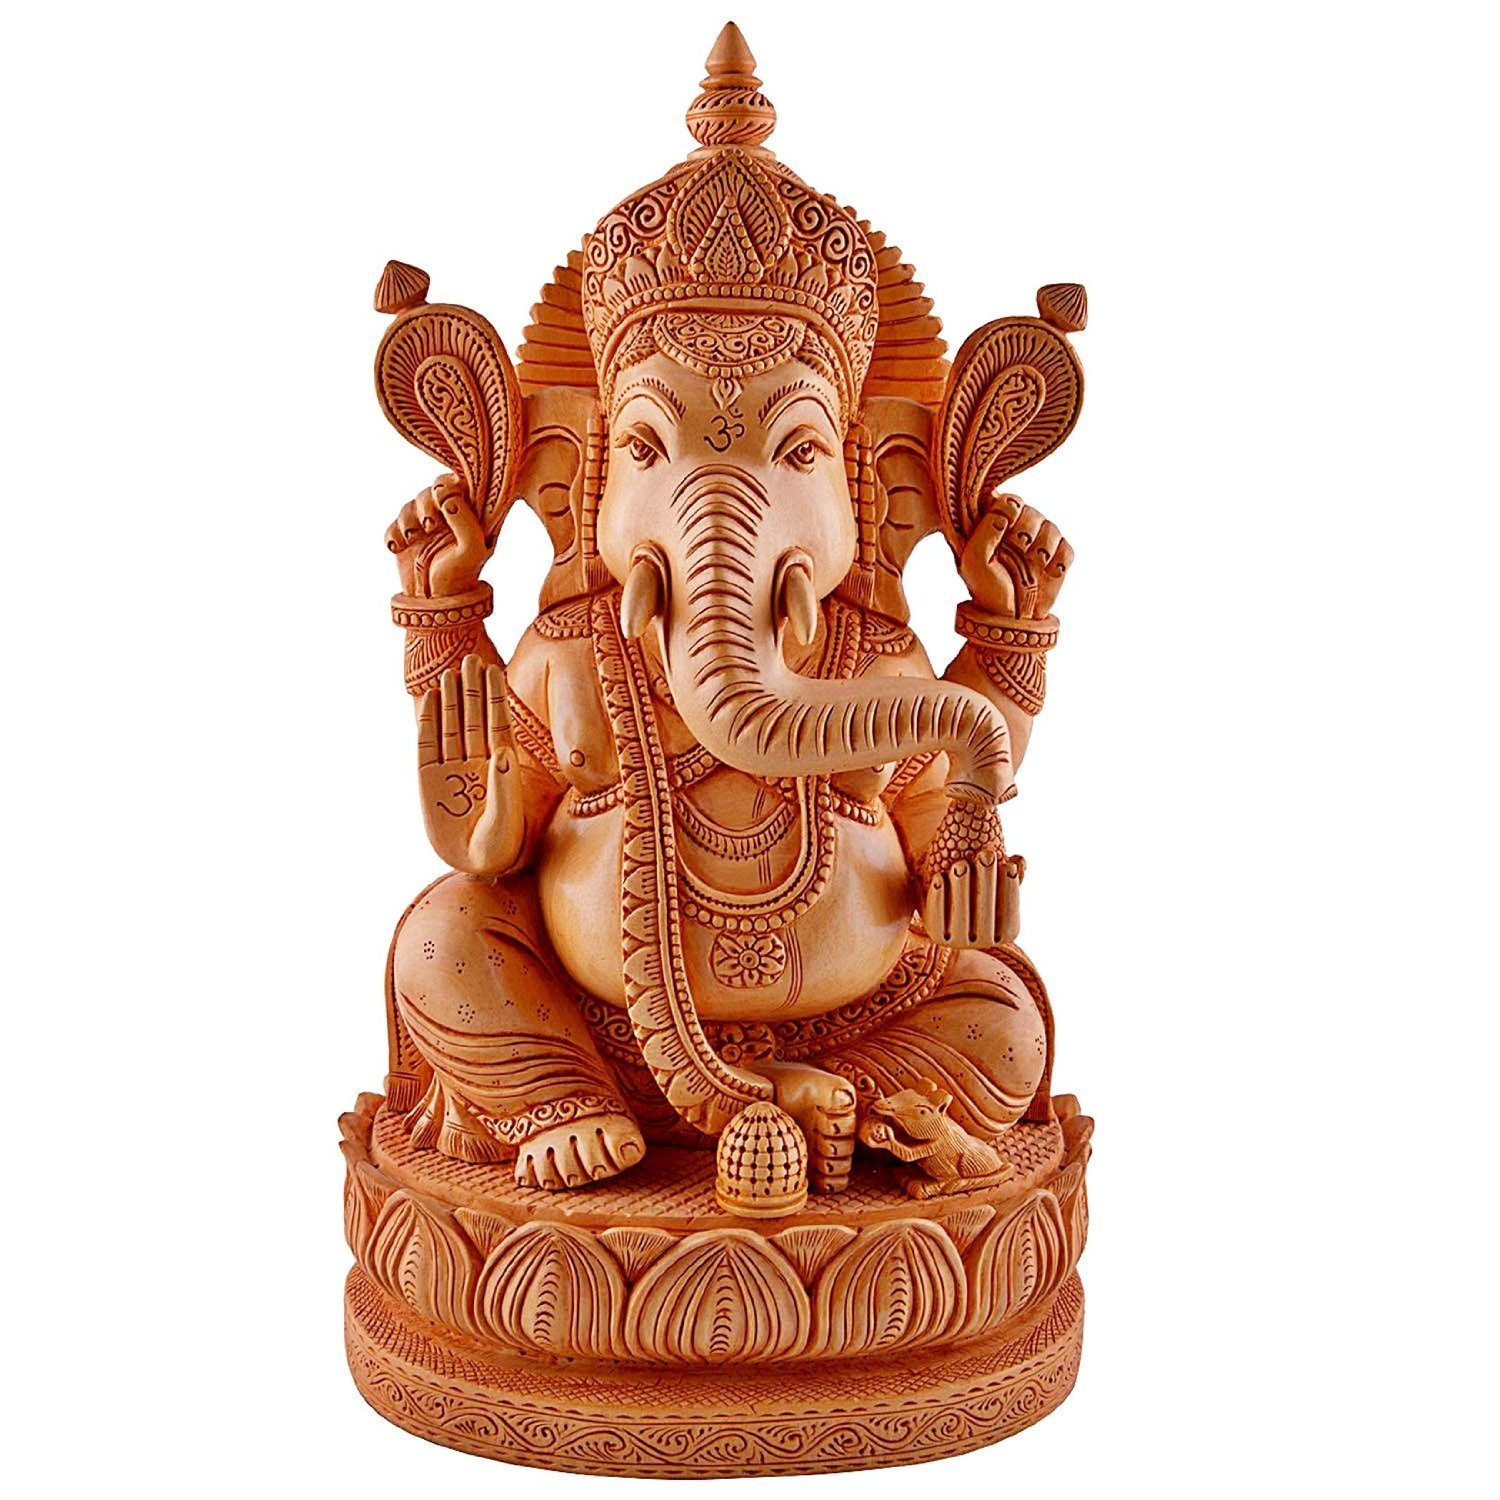 Amazon.com: large 1 feet ganesh ganesha idol statue wooden hand